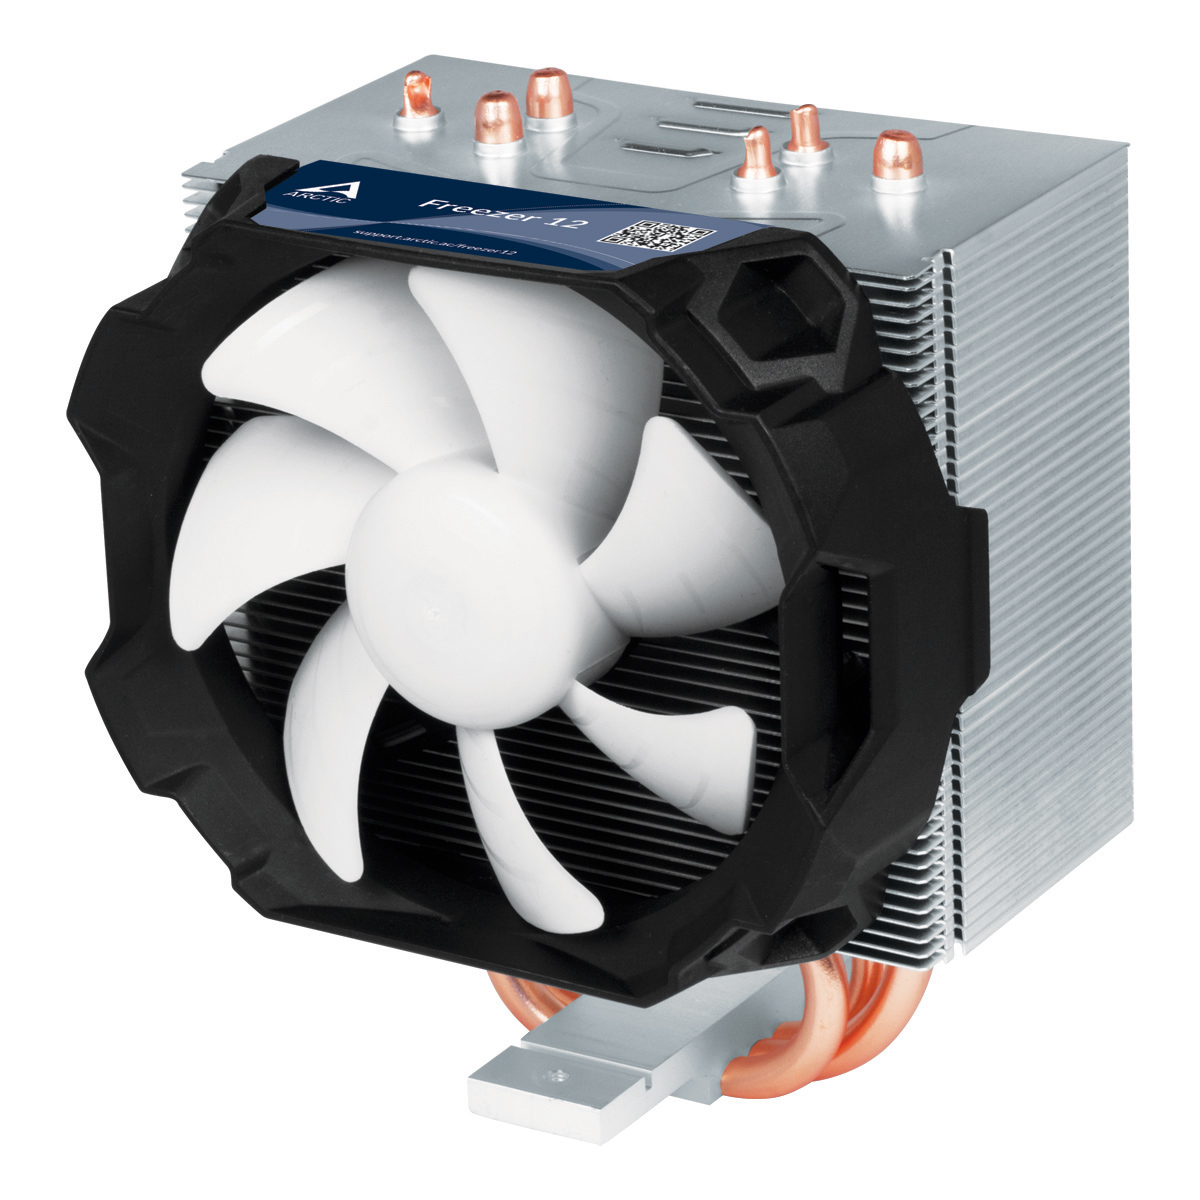 ARCTIC Freezer 12, CPU Cooler for Intel socket 2011(-v3)/1150/1151/1155/1156/2066 & AMD socket AM4, direct touch